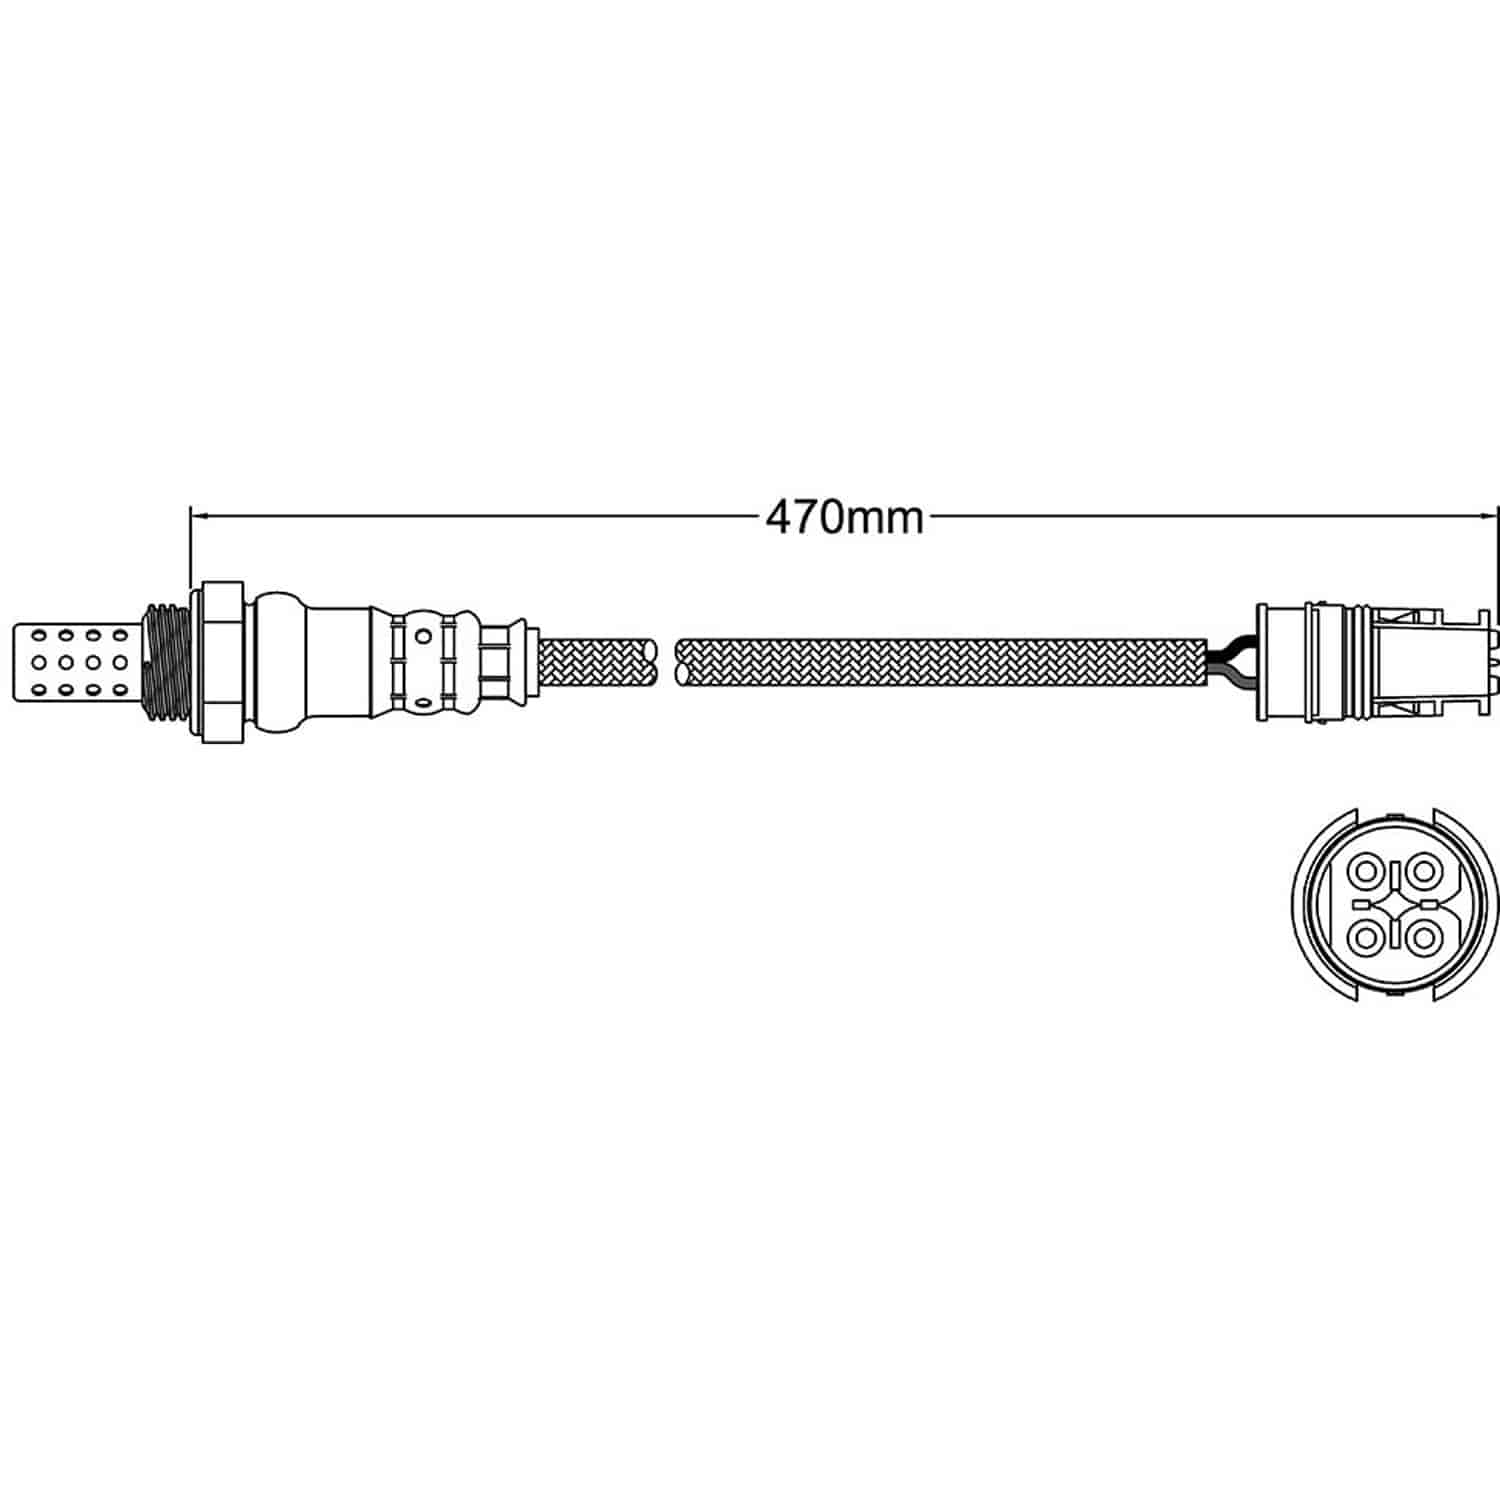 2007 Chrysler Crossfire Limited Exhaust Components Diagram